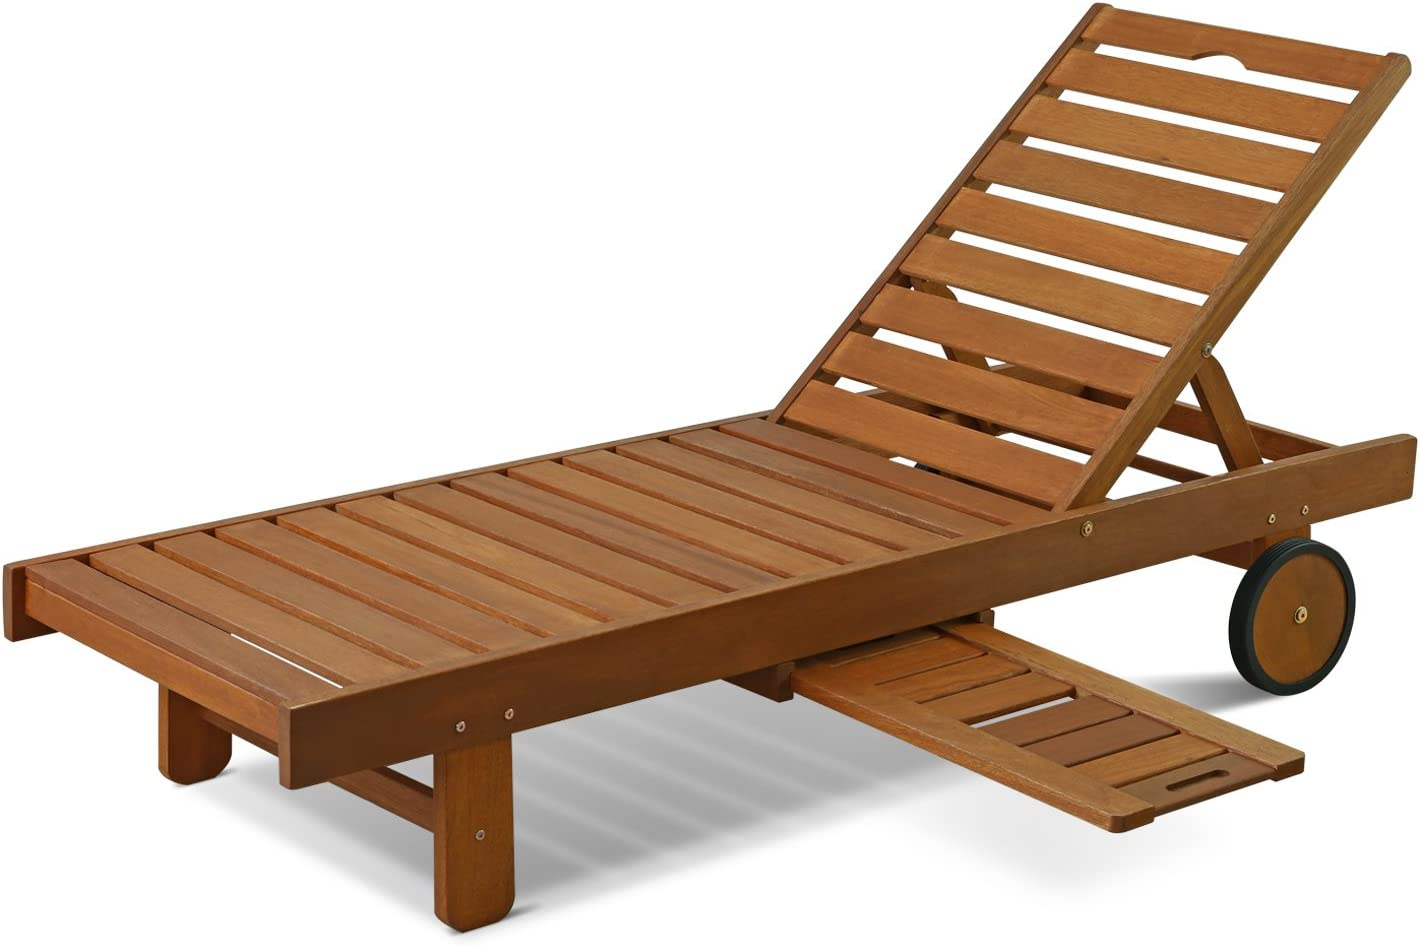 Furinno FG17744 Tioman Outdoor Hardwood Patio Furniture Sun Lounger with Tray in Teak Oil, Natural